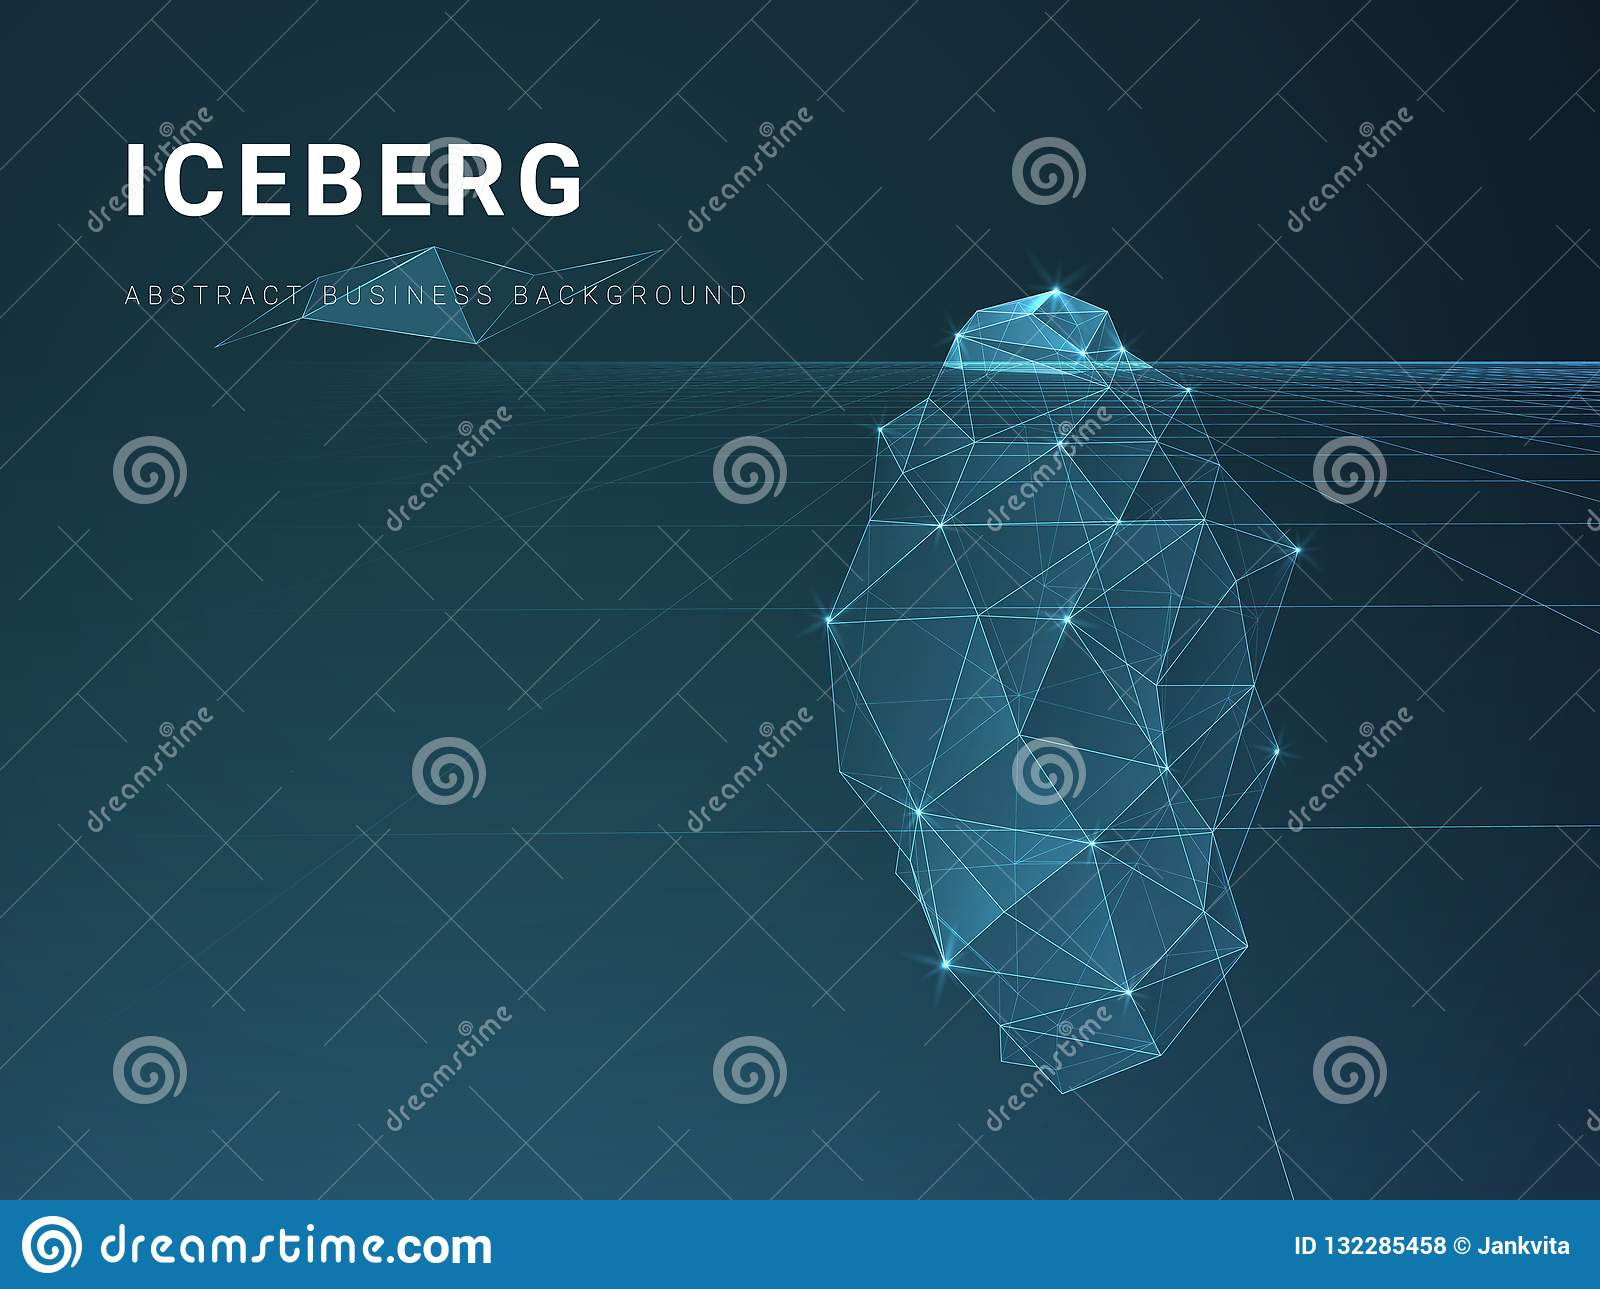 Abstract modern business background vector with stars and lines in shape of an iceberg on blue background